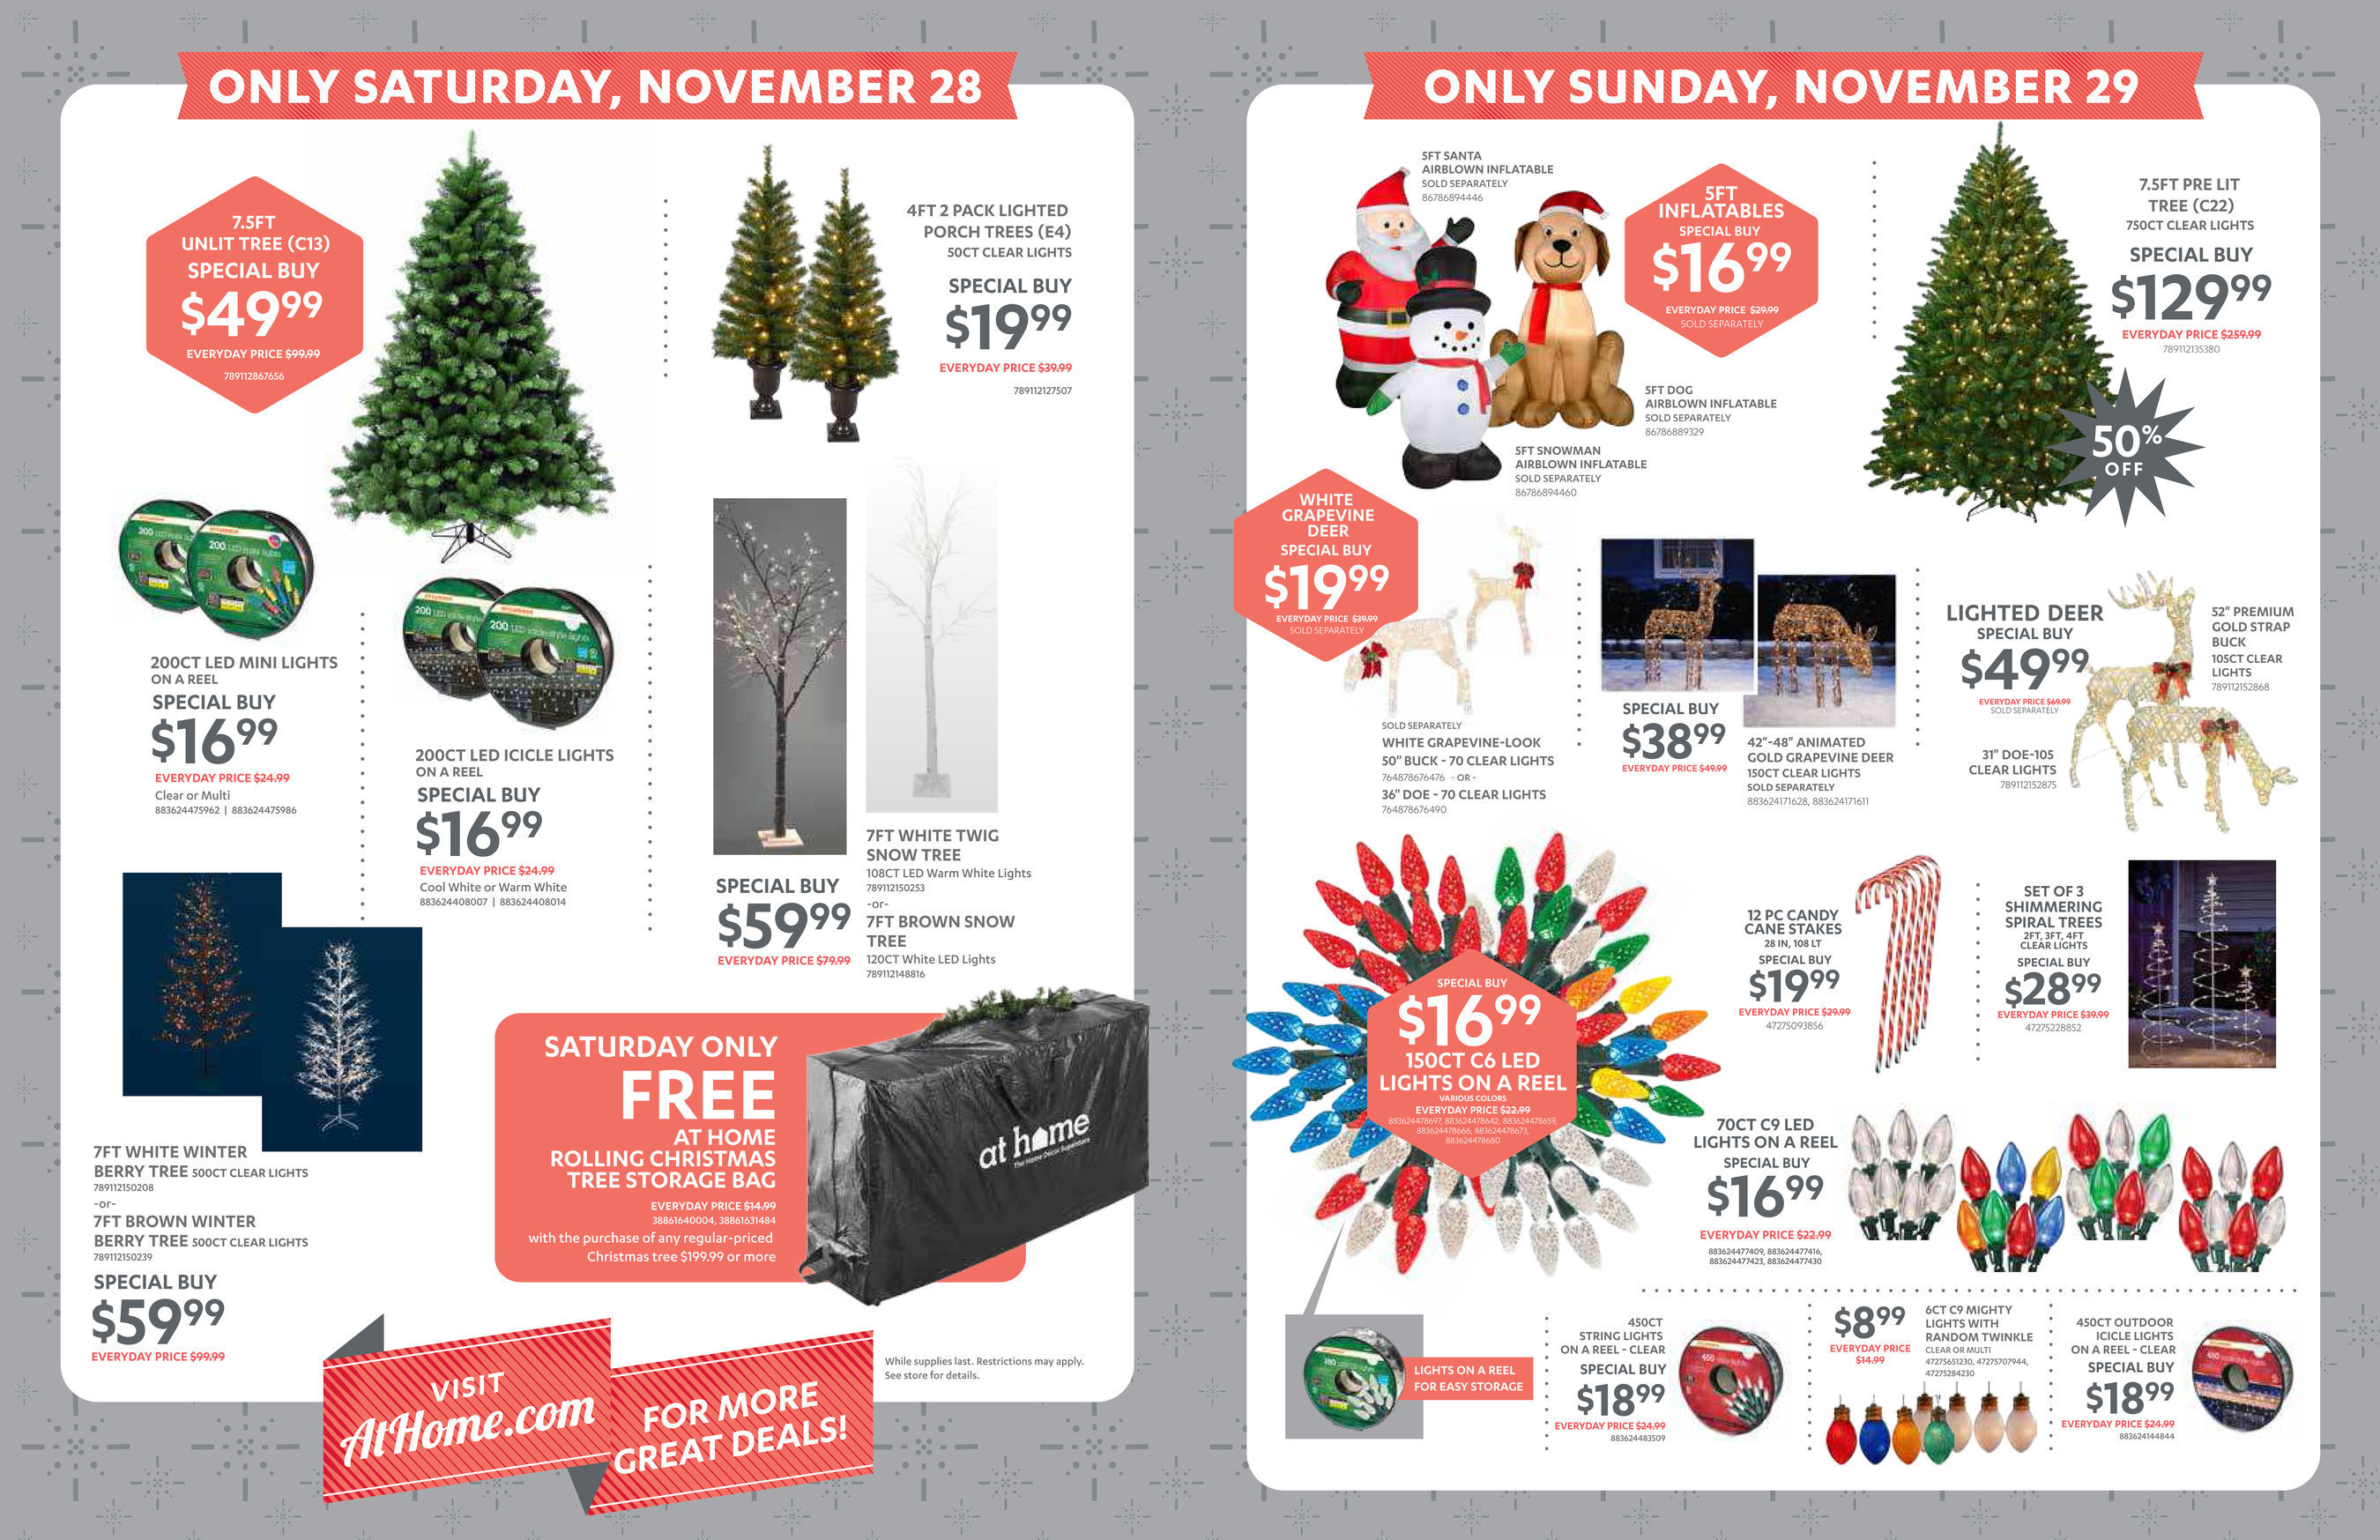 at home black friday special buys available nov 27 nov 29 2015